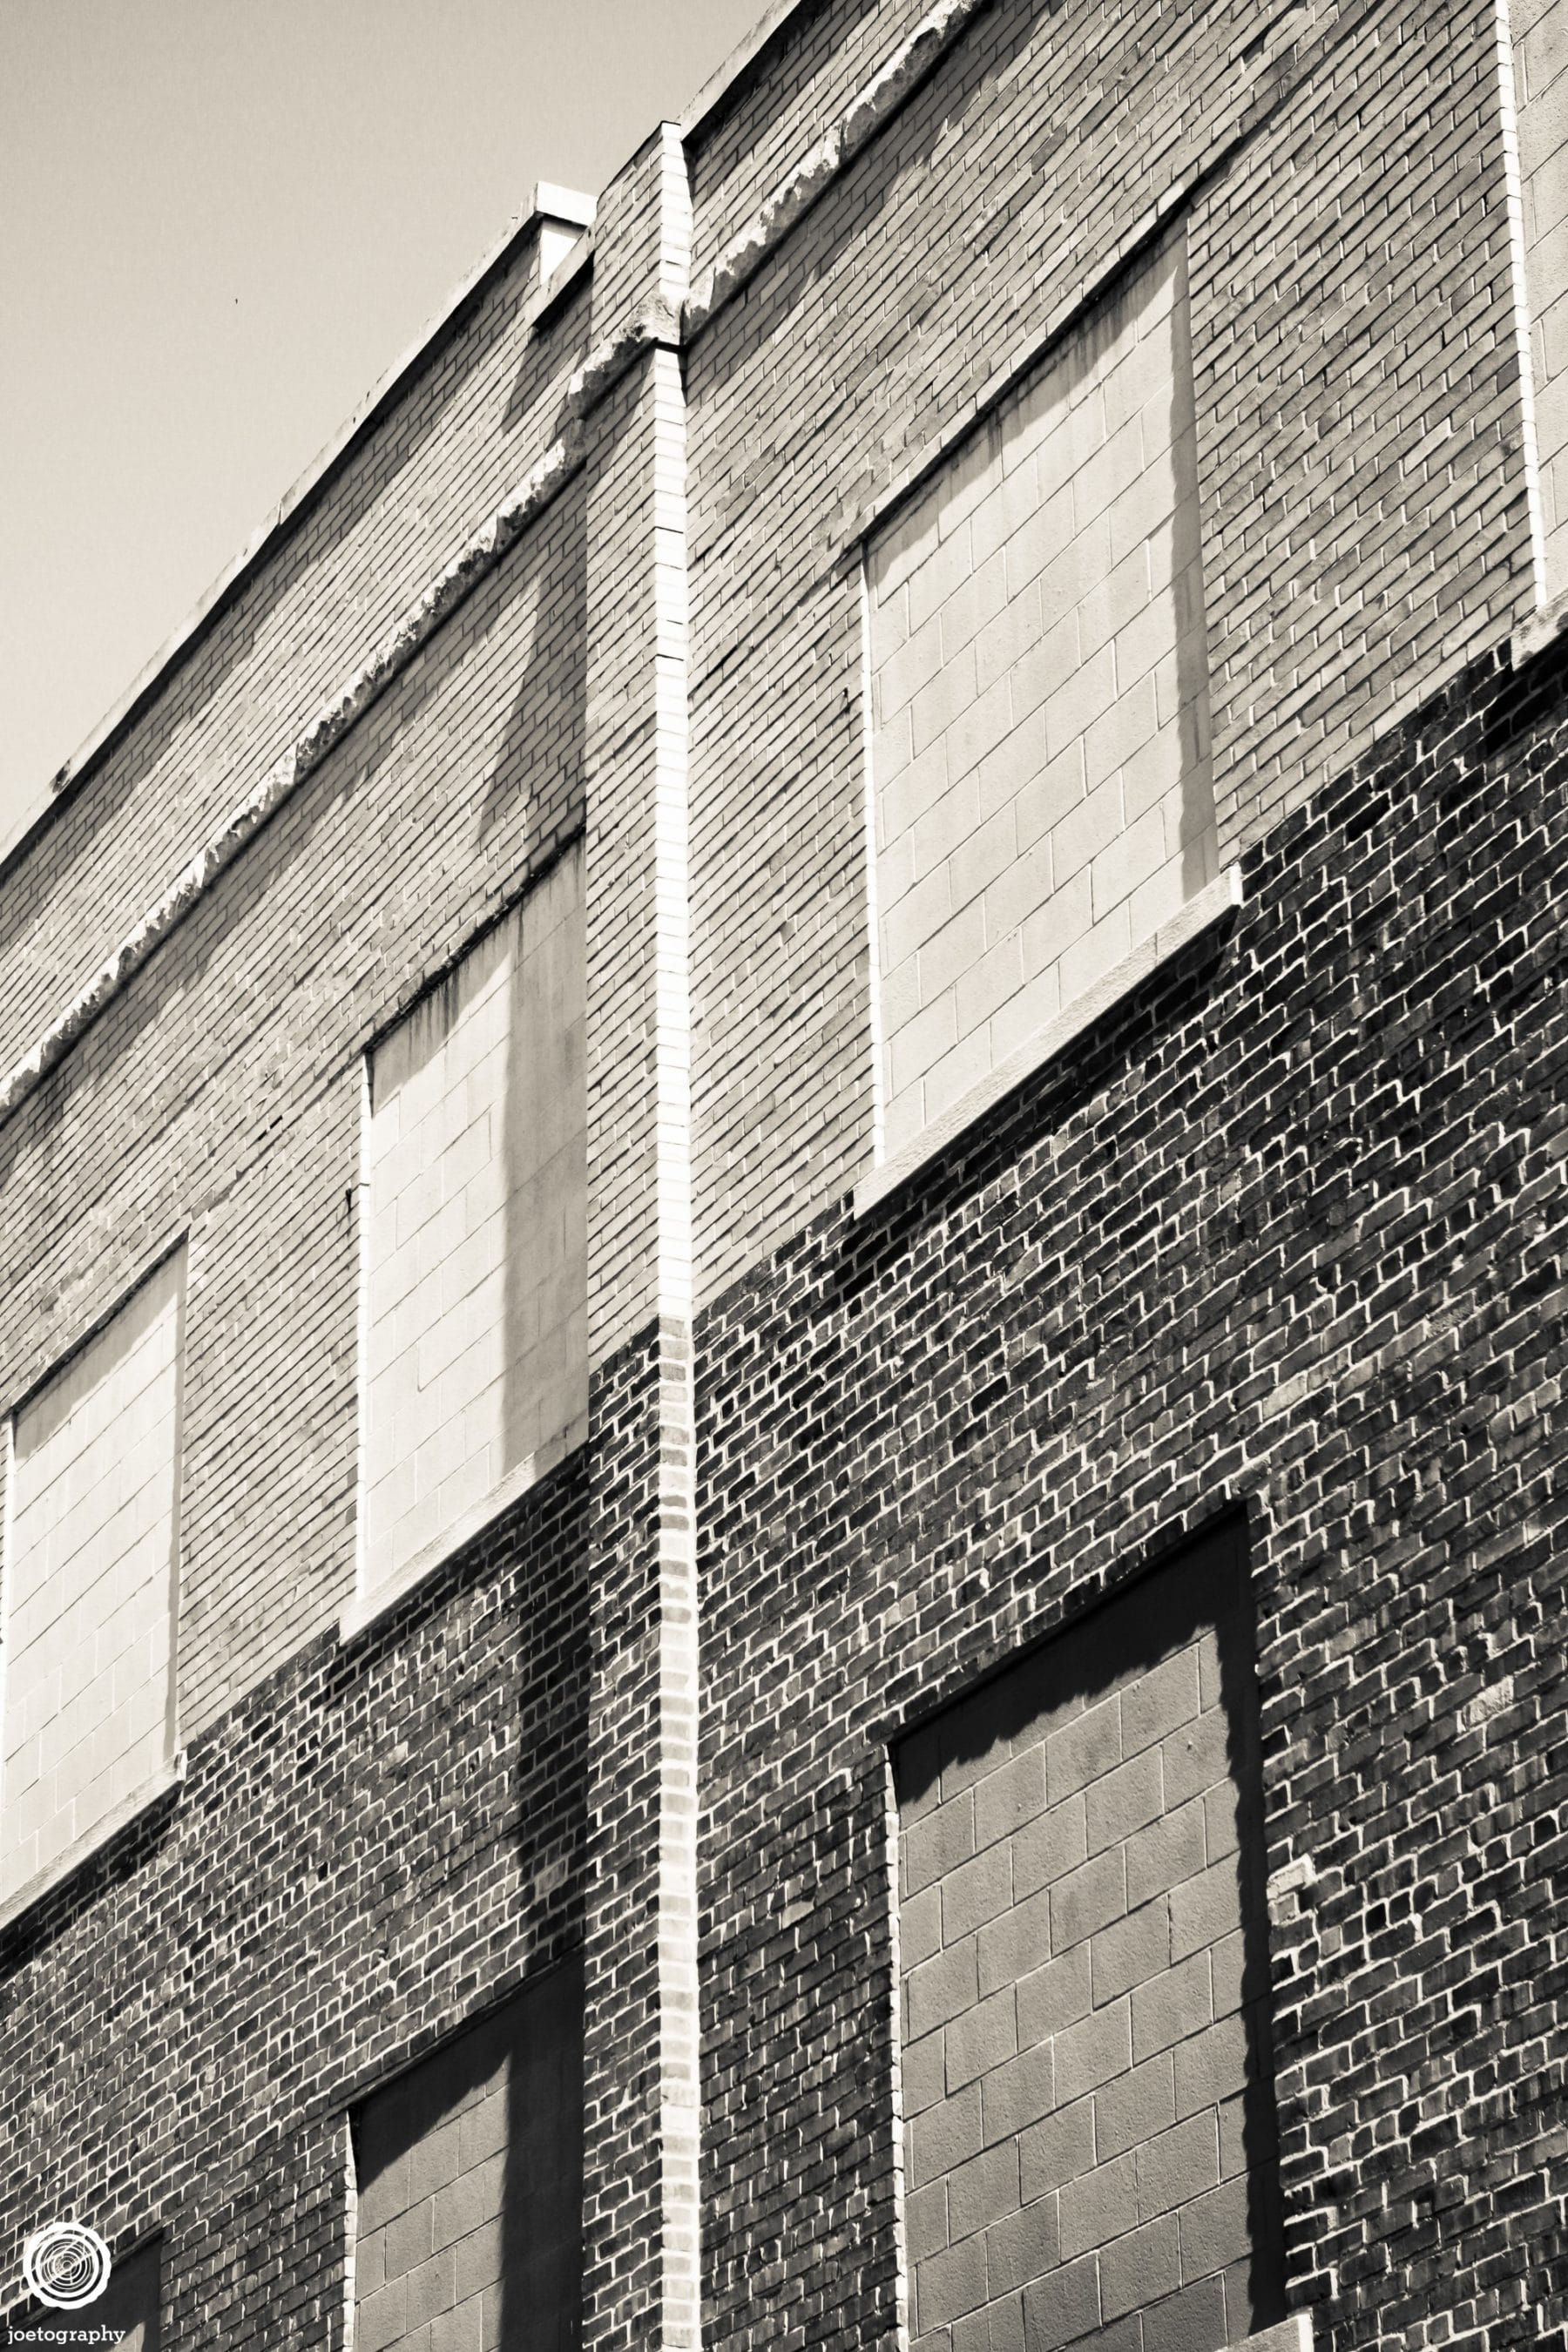 Alleyways-Architecture-Photography-Columbus-Indiana-6